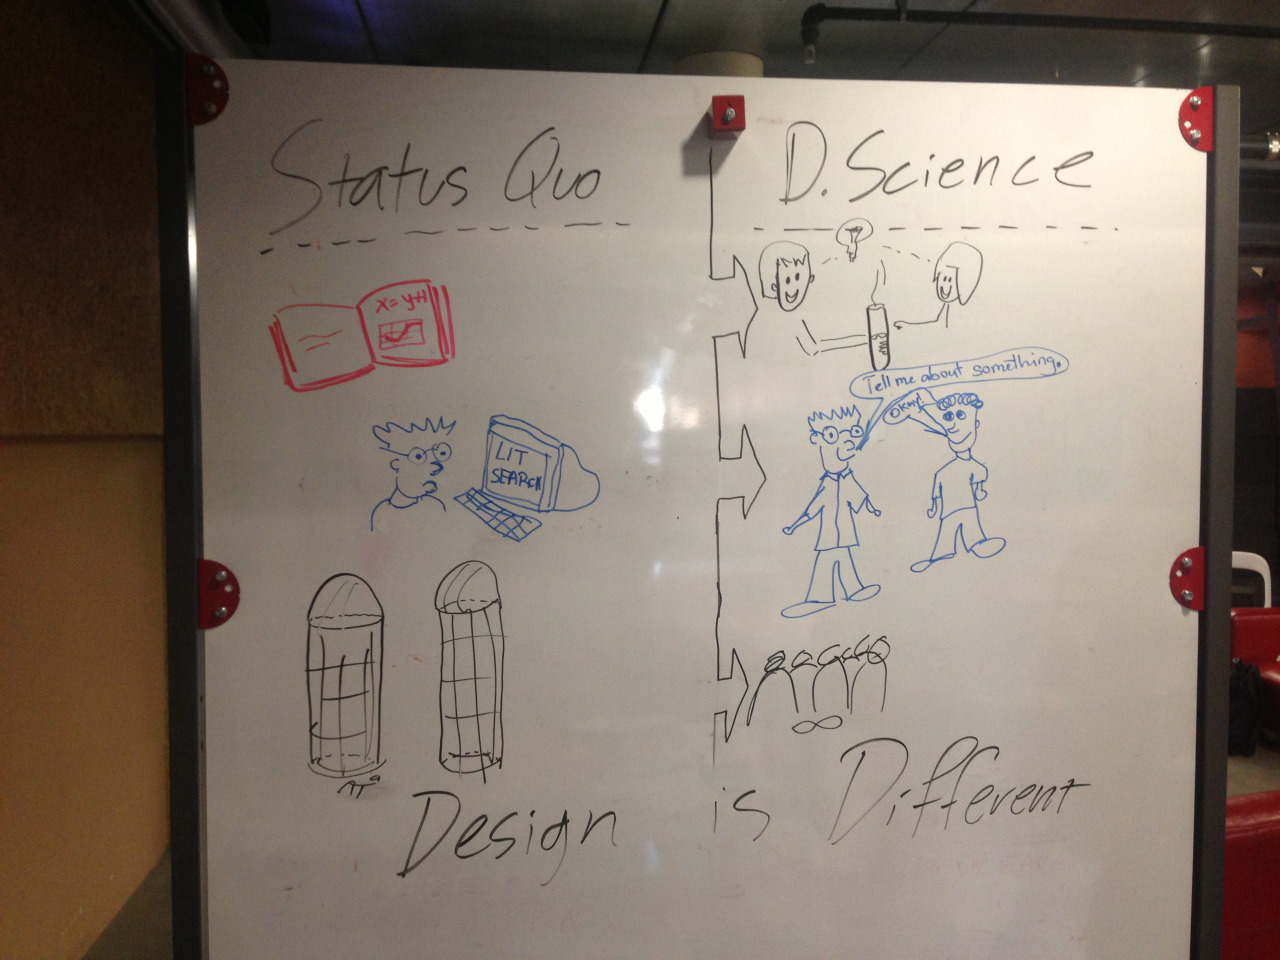 dscience_designscience_sketch2.jpg